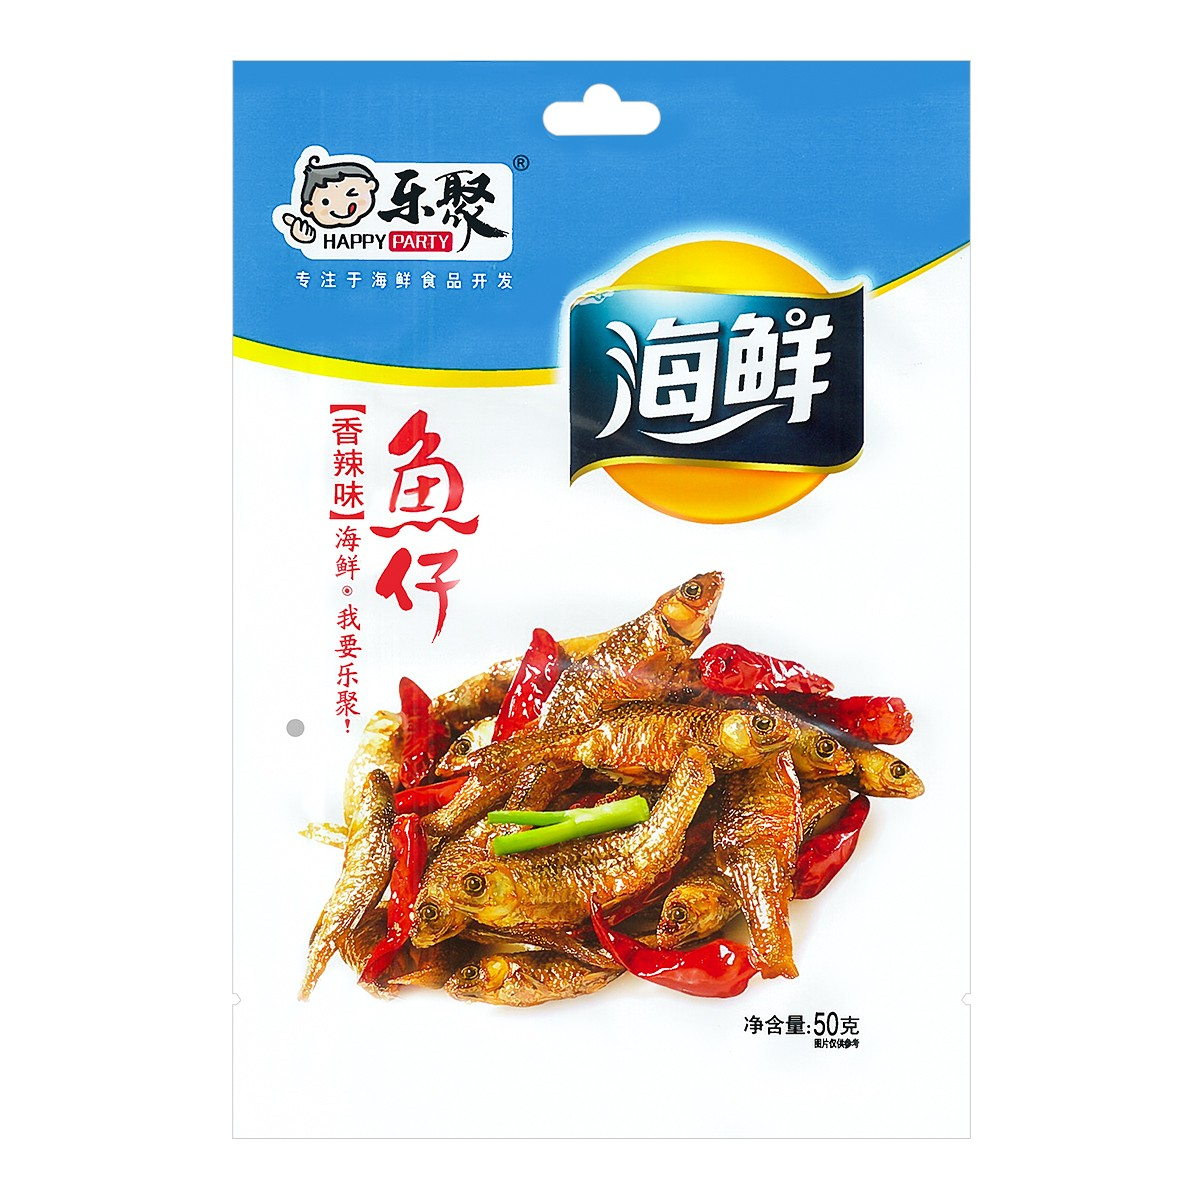 HAPPY PARTY Dried Fish Hot Spicy 50g